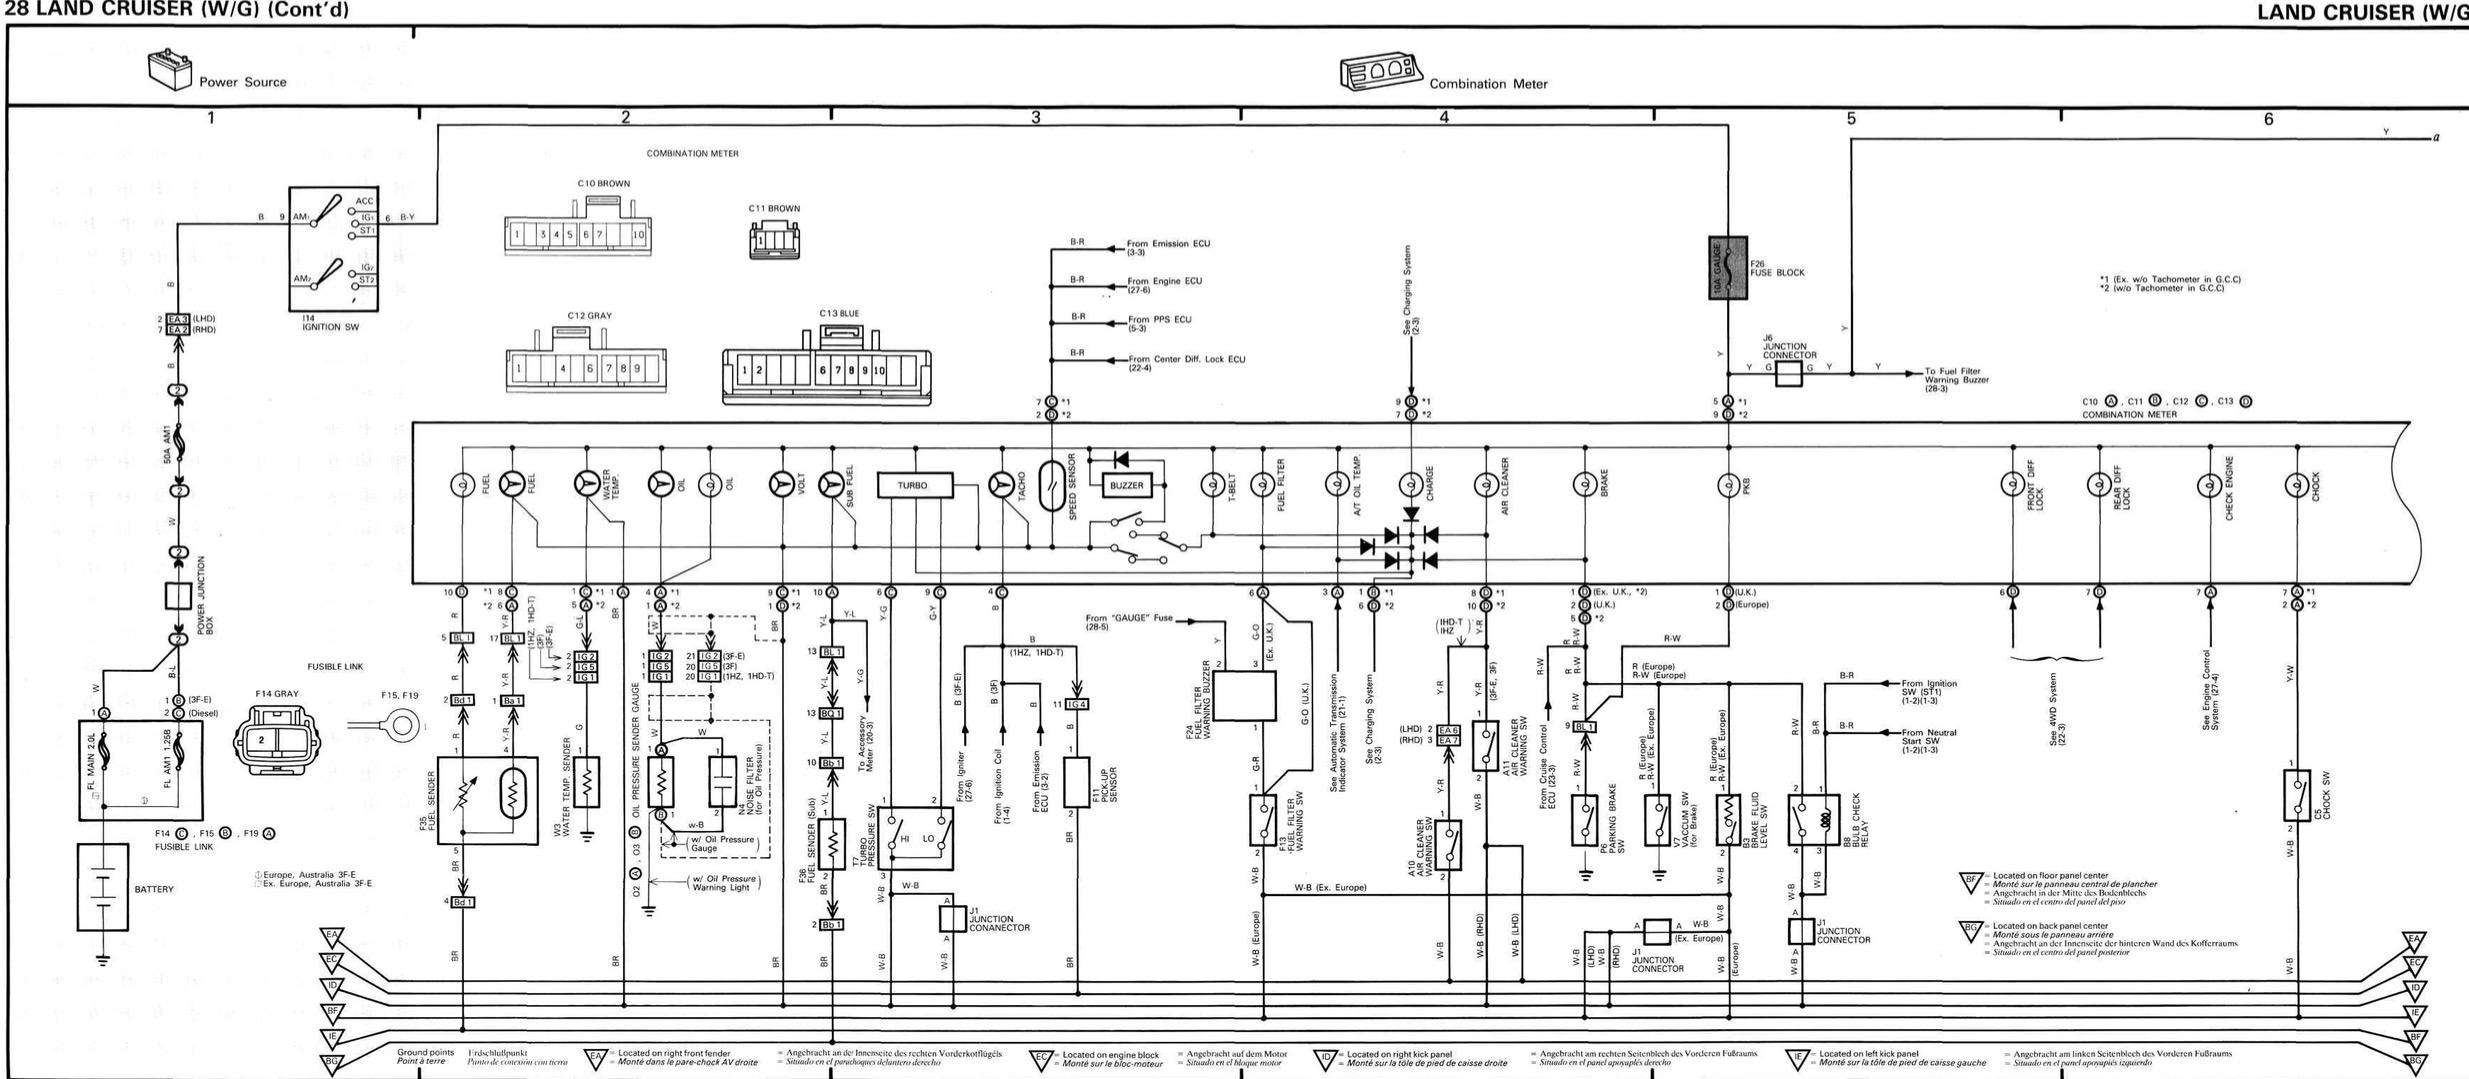 oil pressure sender wiring schematic? land cruiser club 1hd-fte wiring diagram at aneh.co